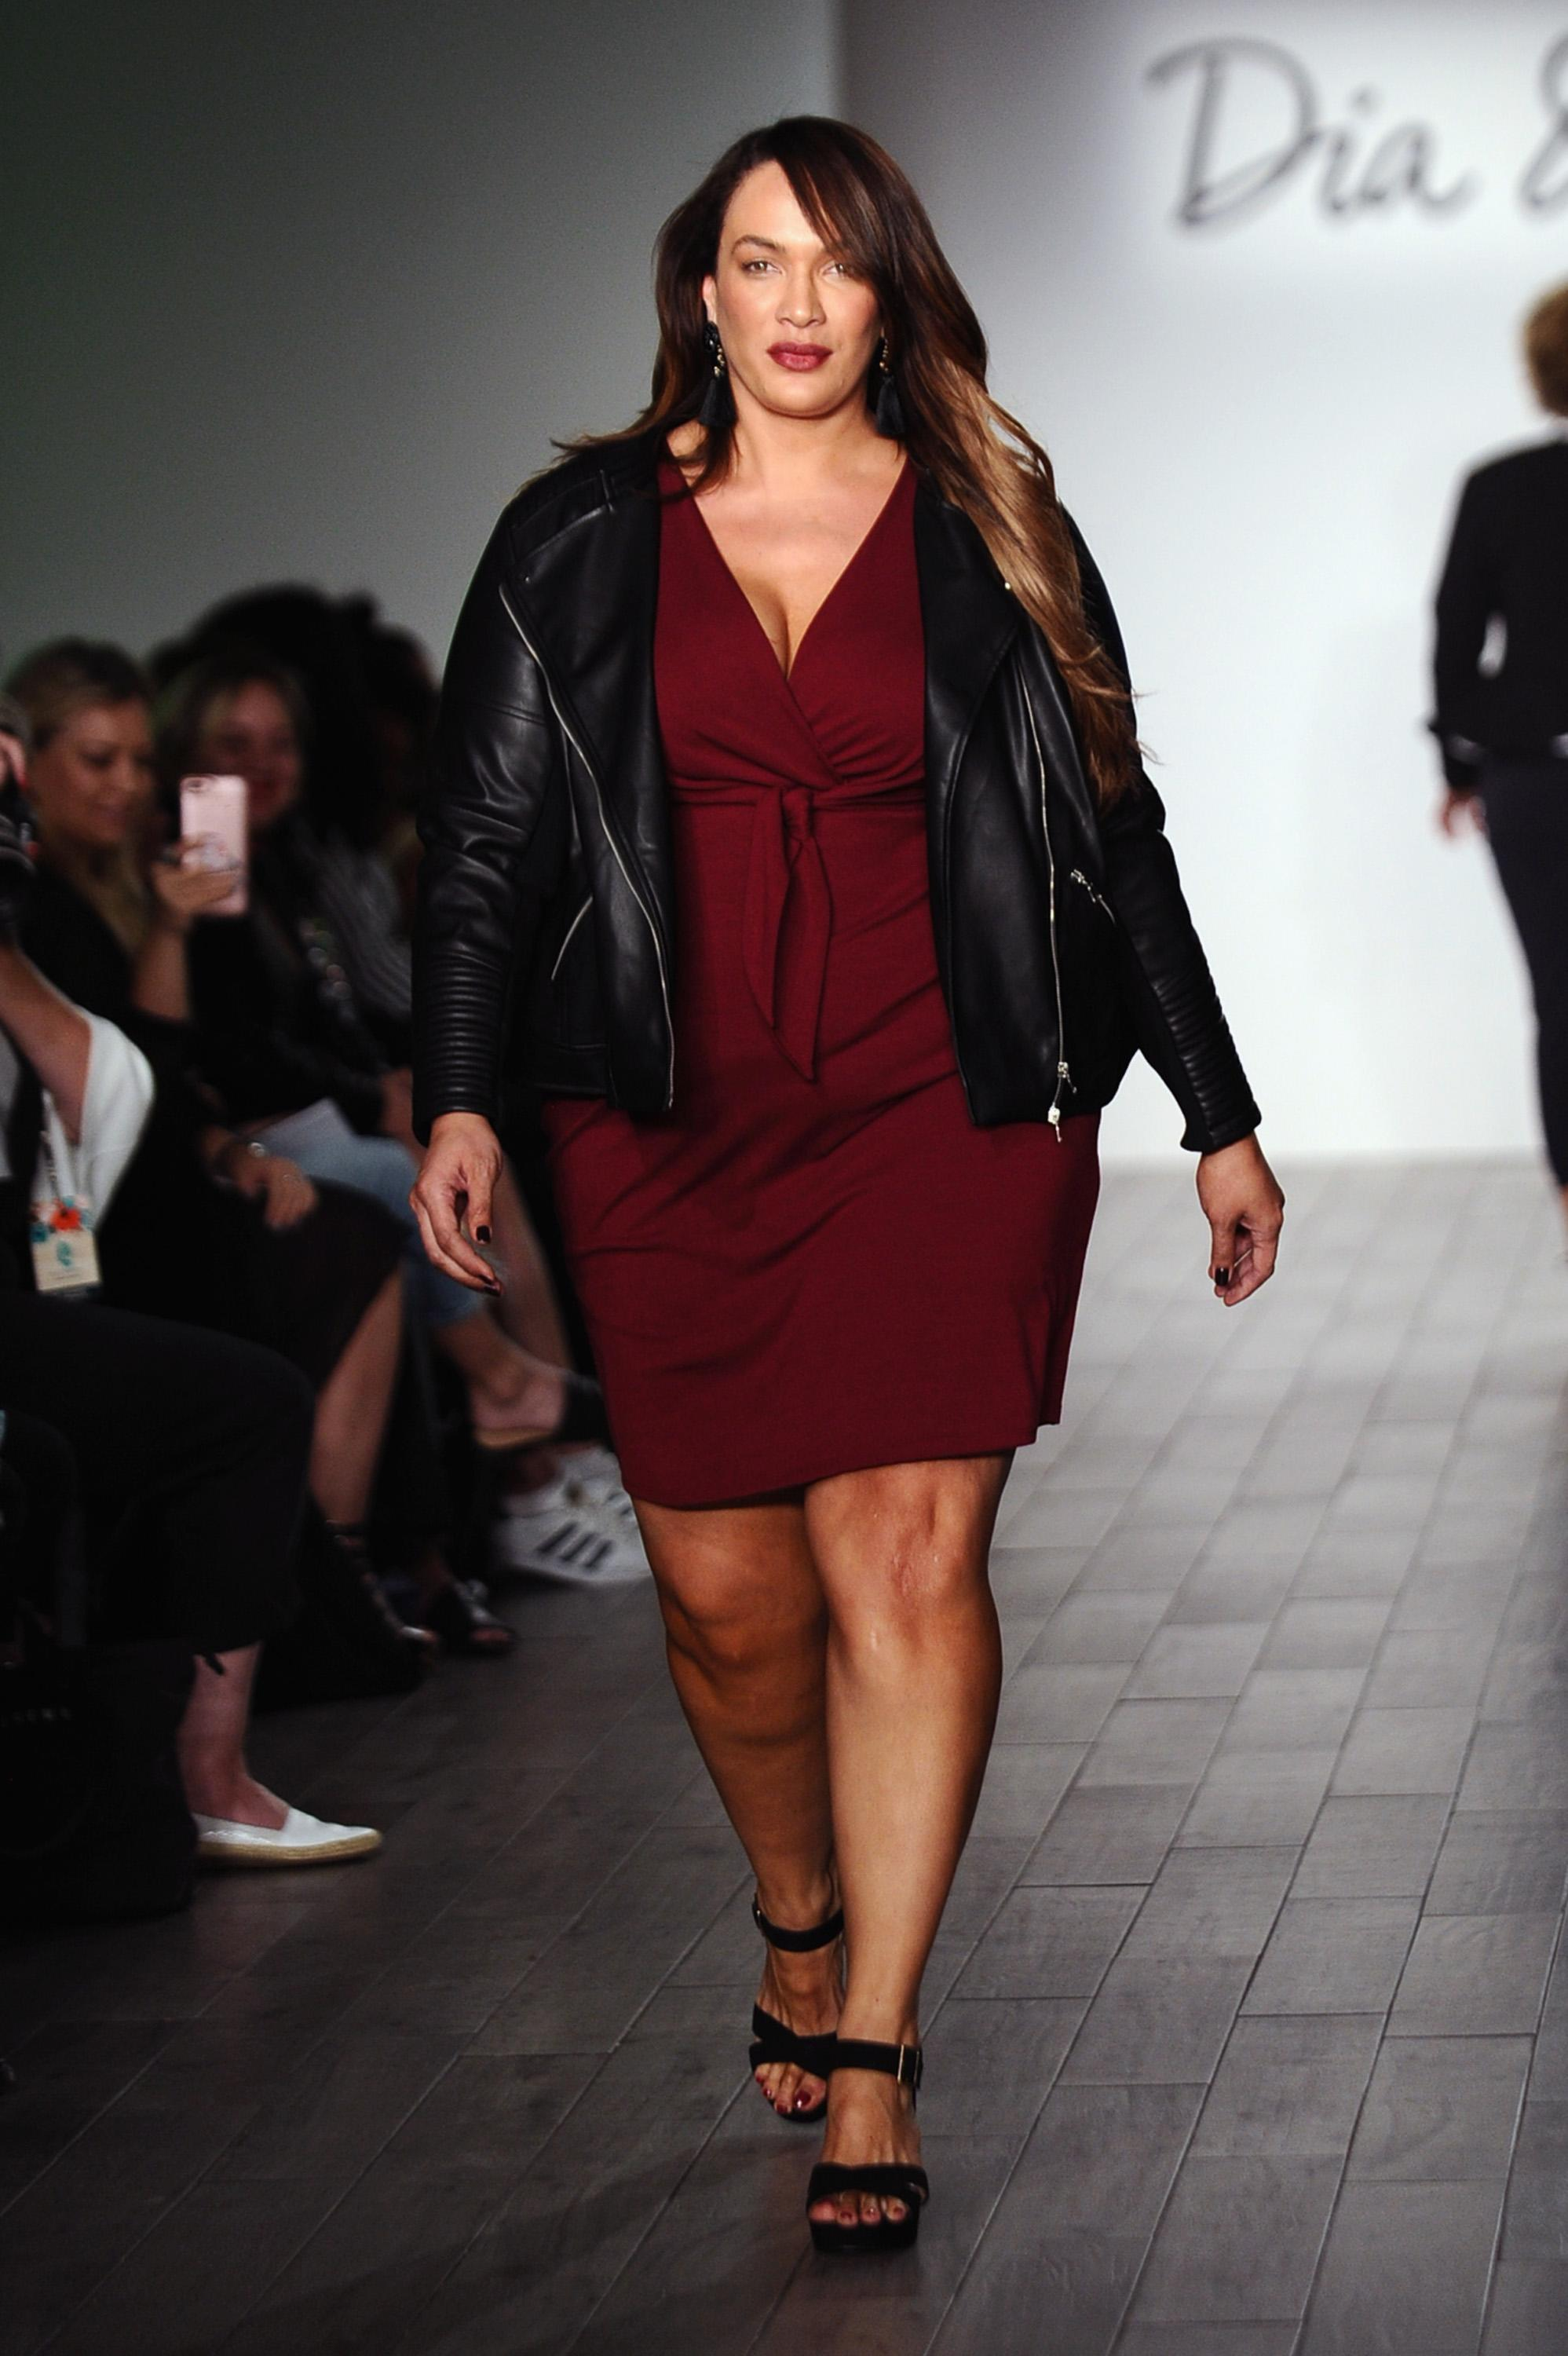 Nia Jax, WWE star and cousin of the Rock, wows crowd in 'amazingly empowering' fashion show Video